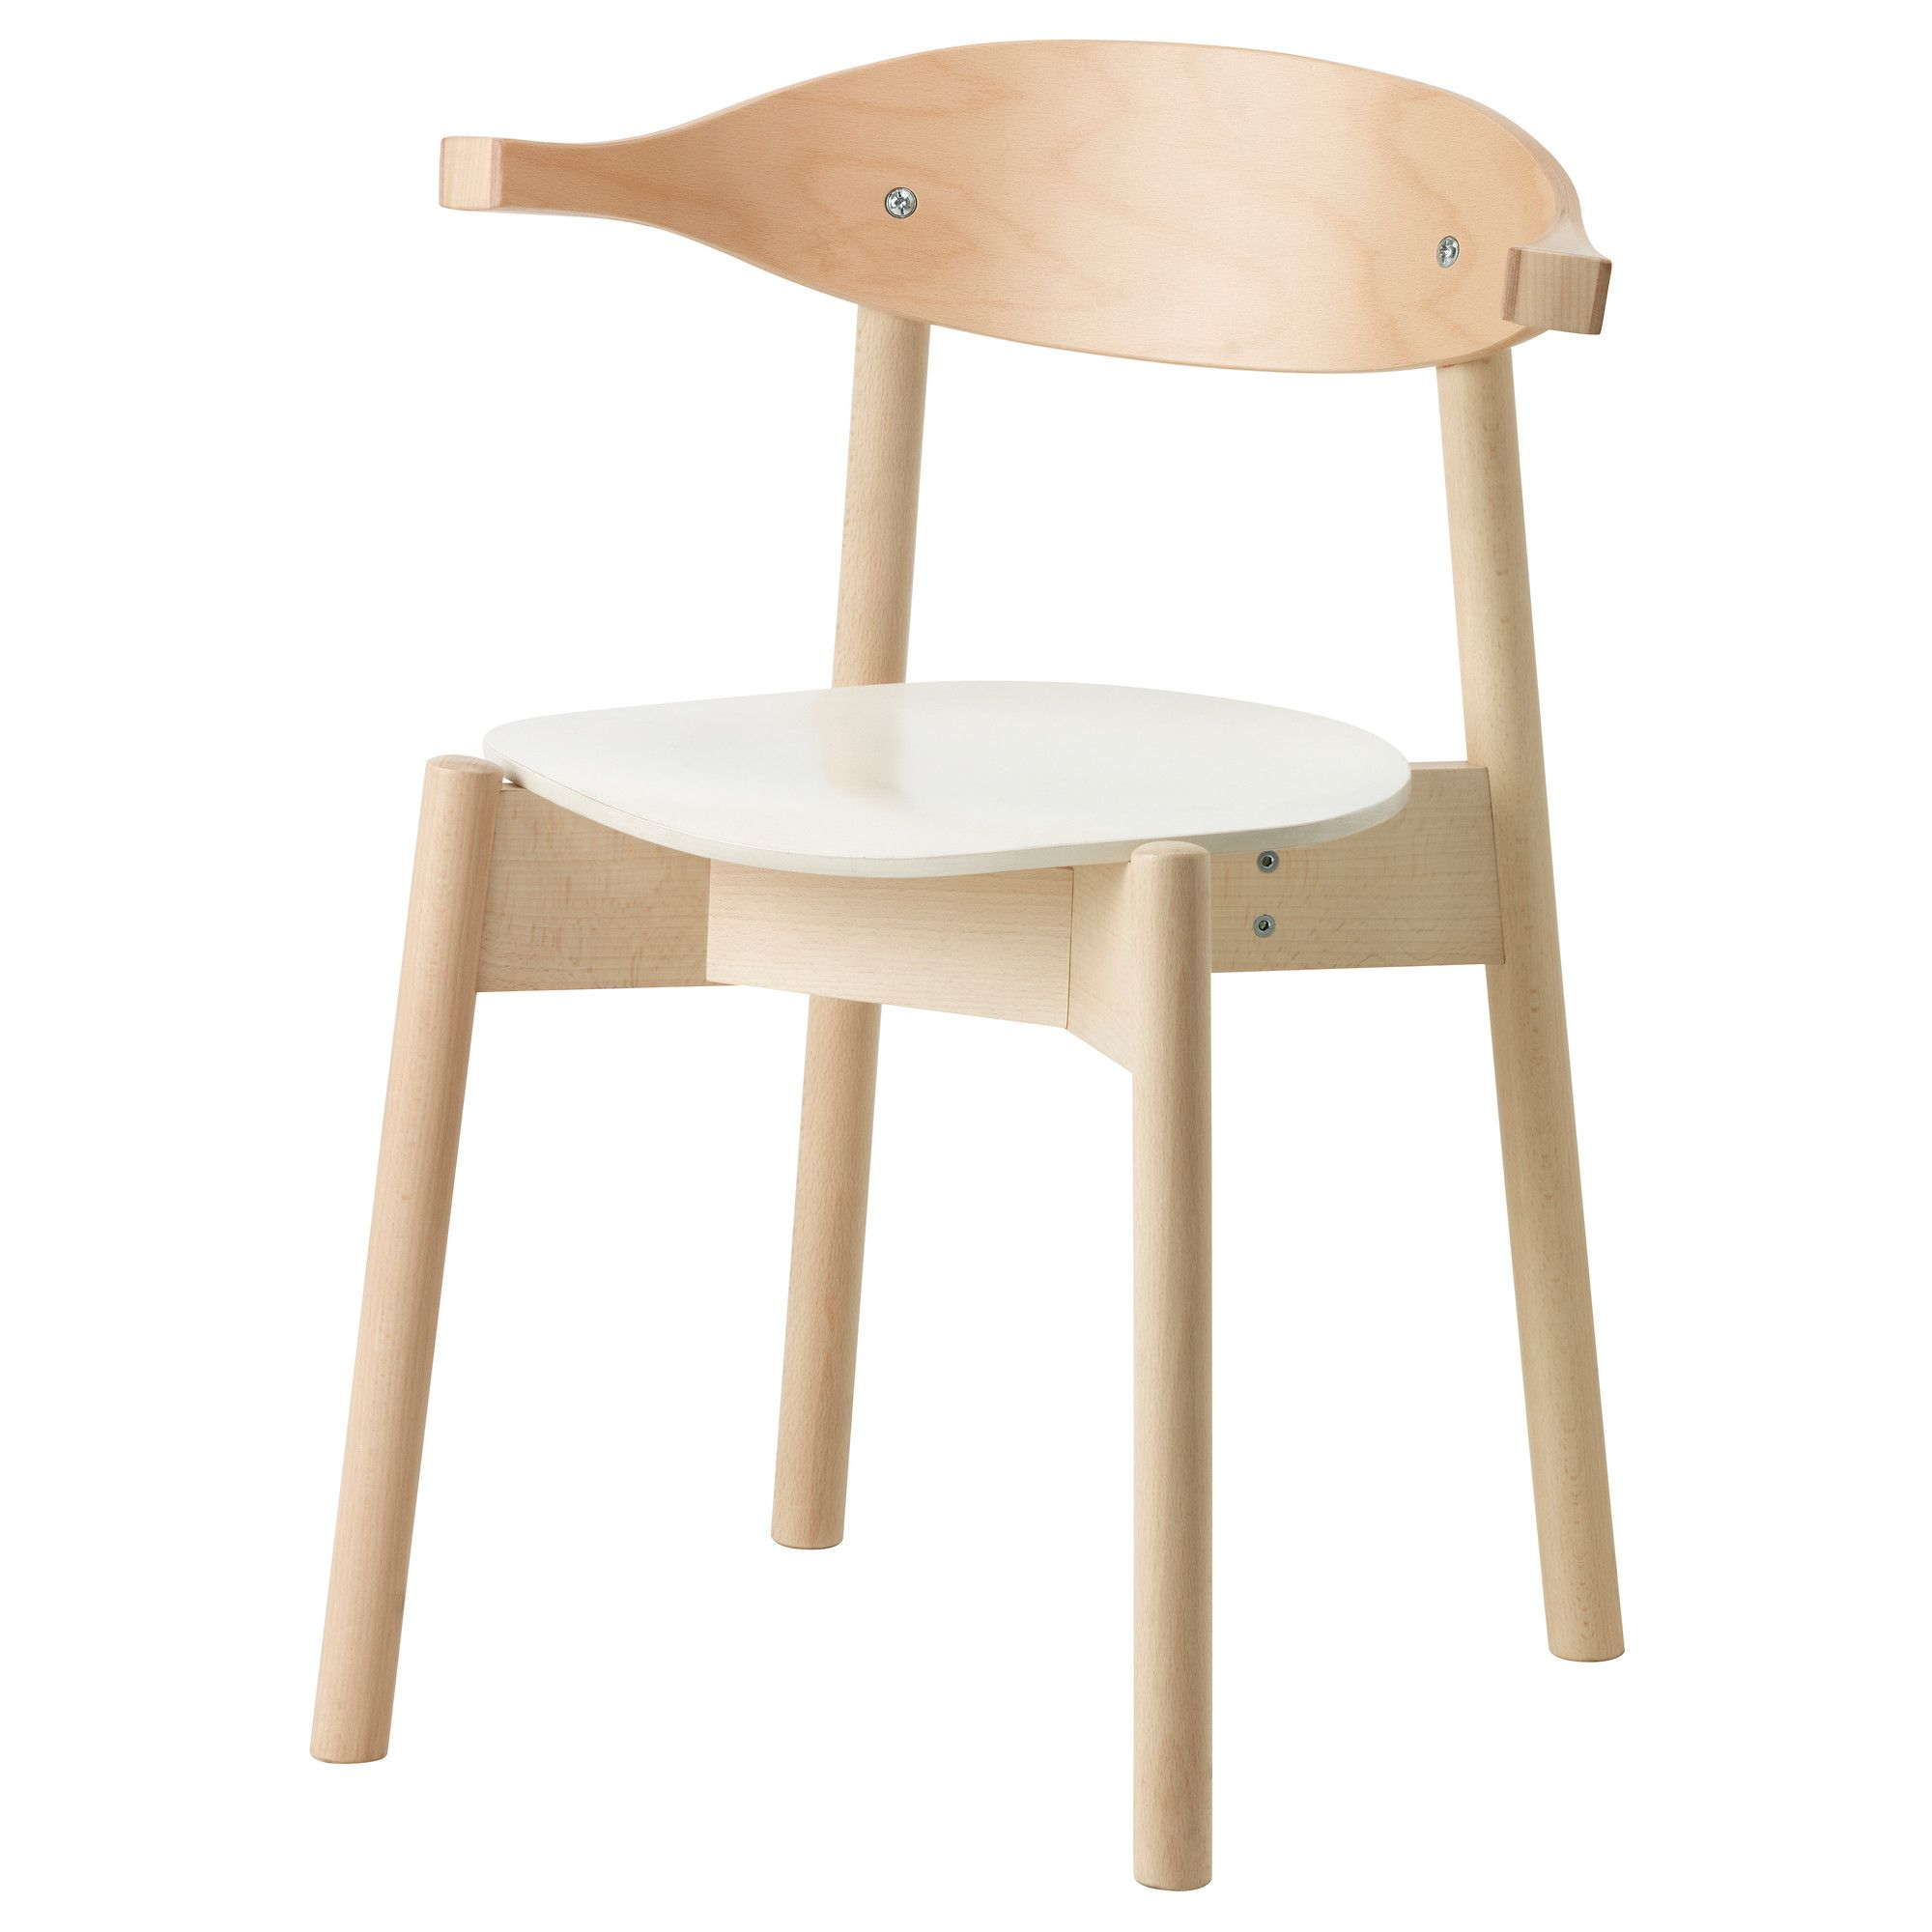 BOJNE Chair With Armrests Light Beech Width 55 Cm Depth 47 Height 72